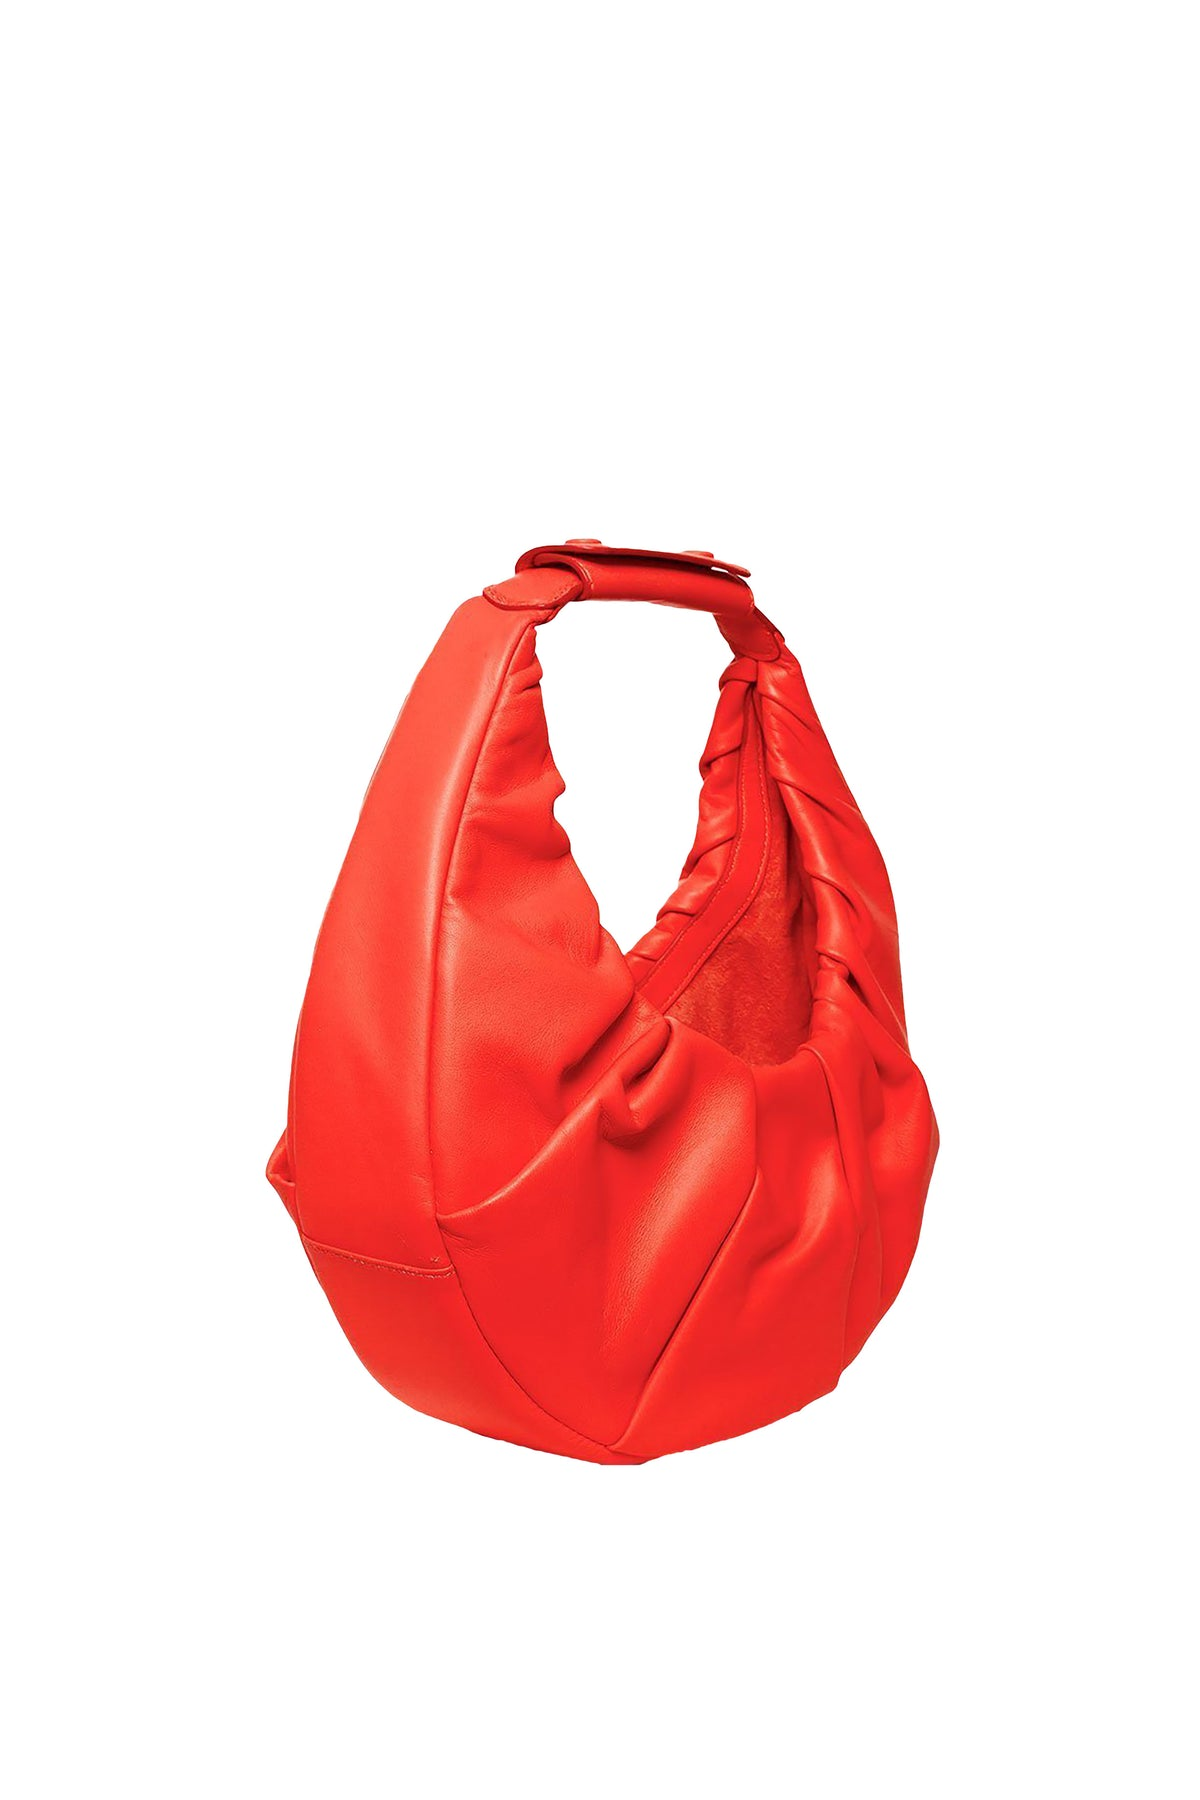 Staud Soft Moon Bag, Hawaiian Red